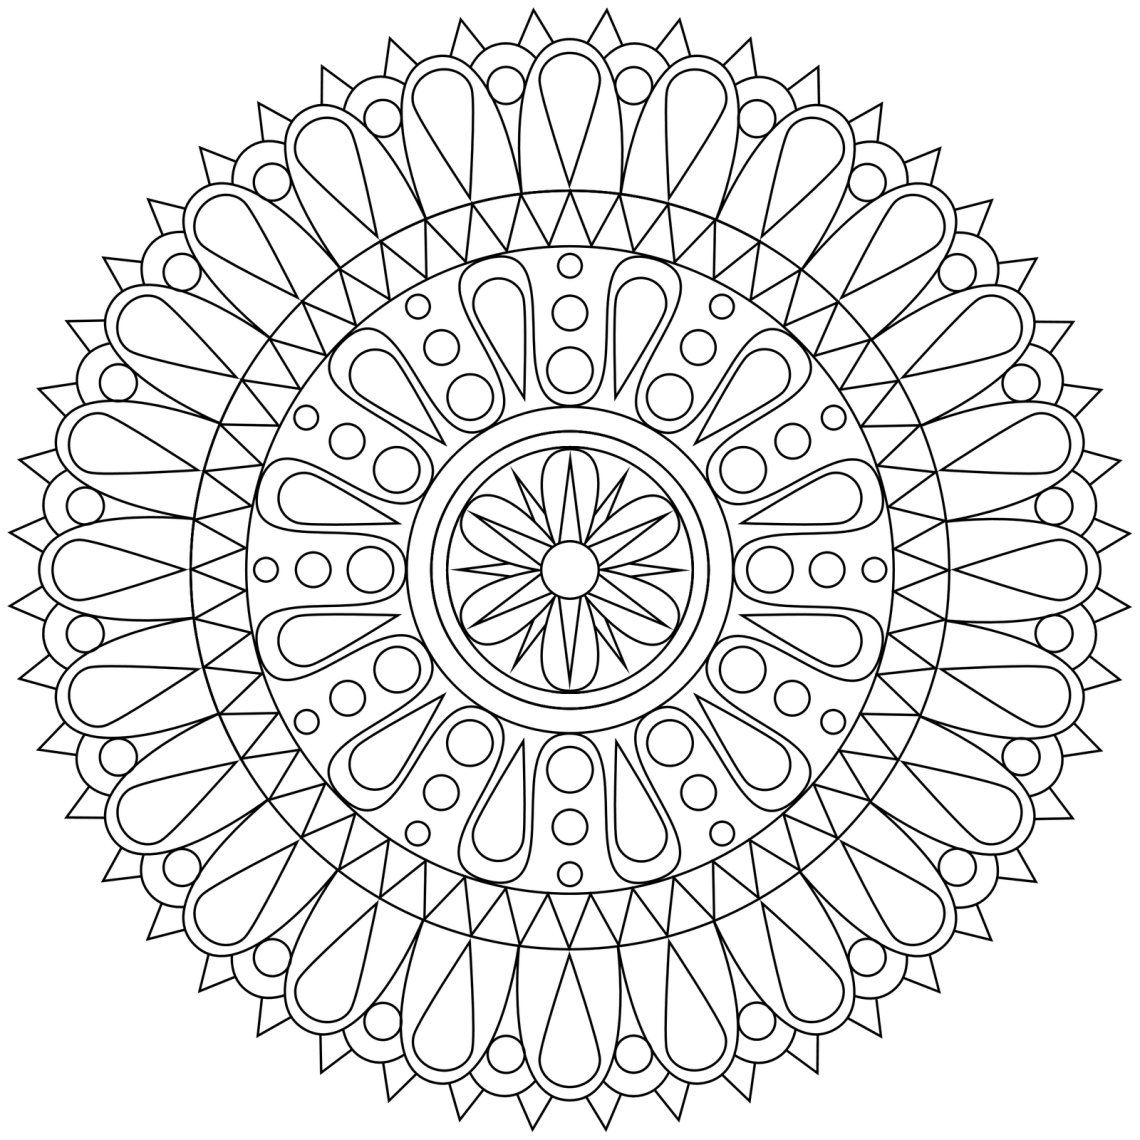 Free Mandala Coloring Pages For Adults - Coloring Home | printable mandala coloring pages